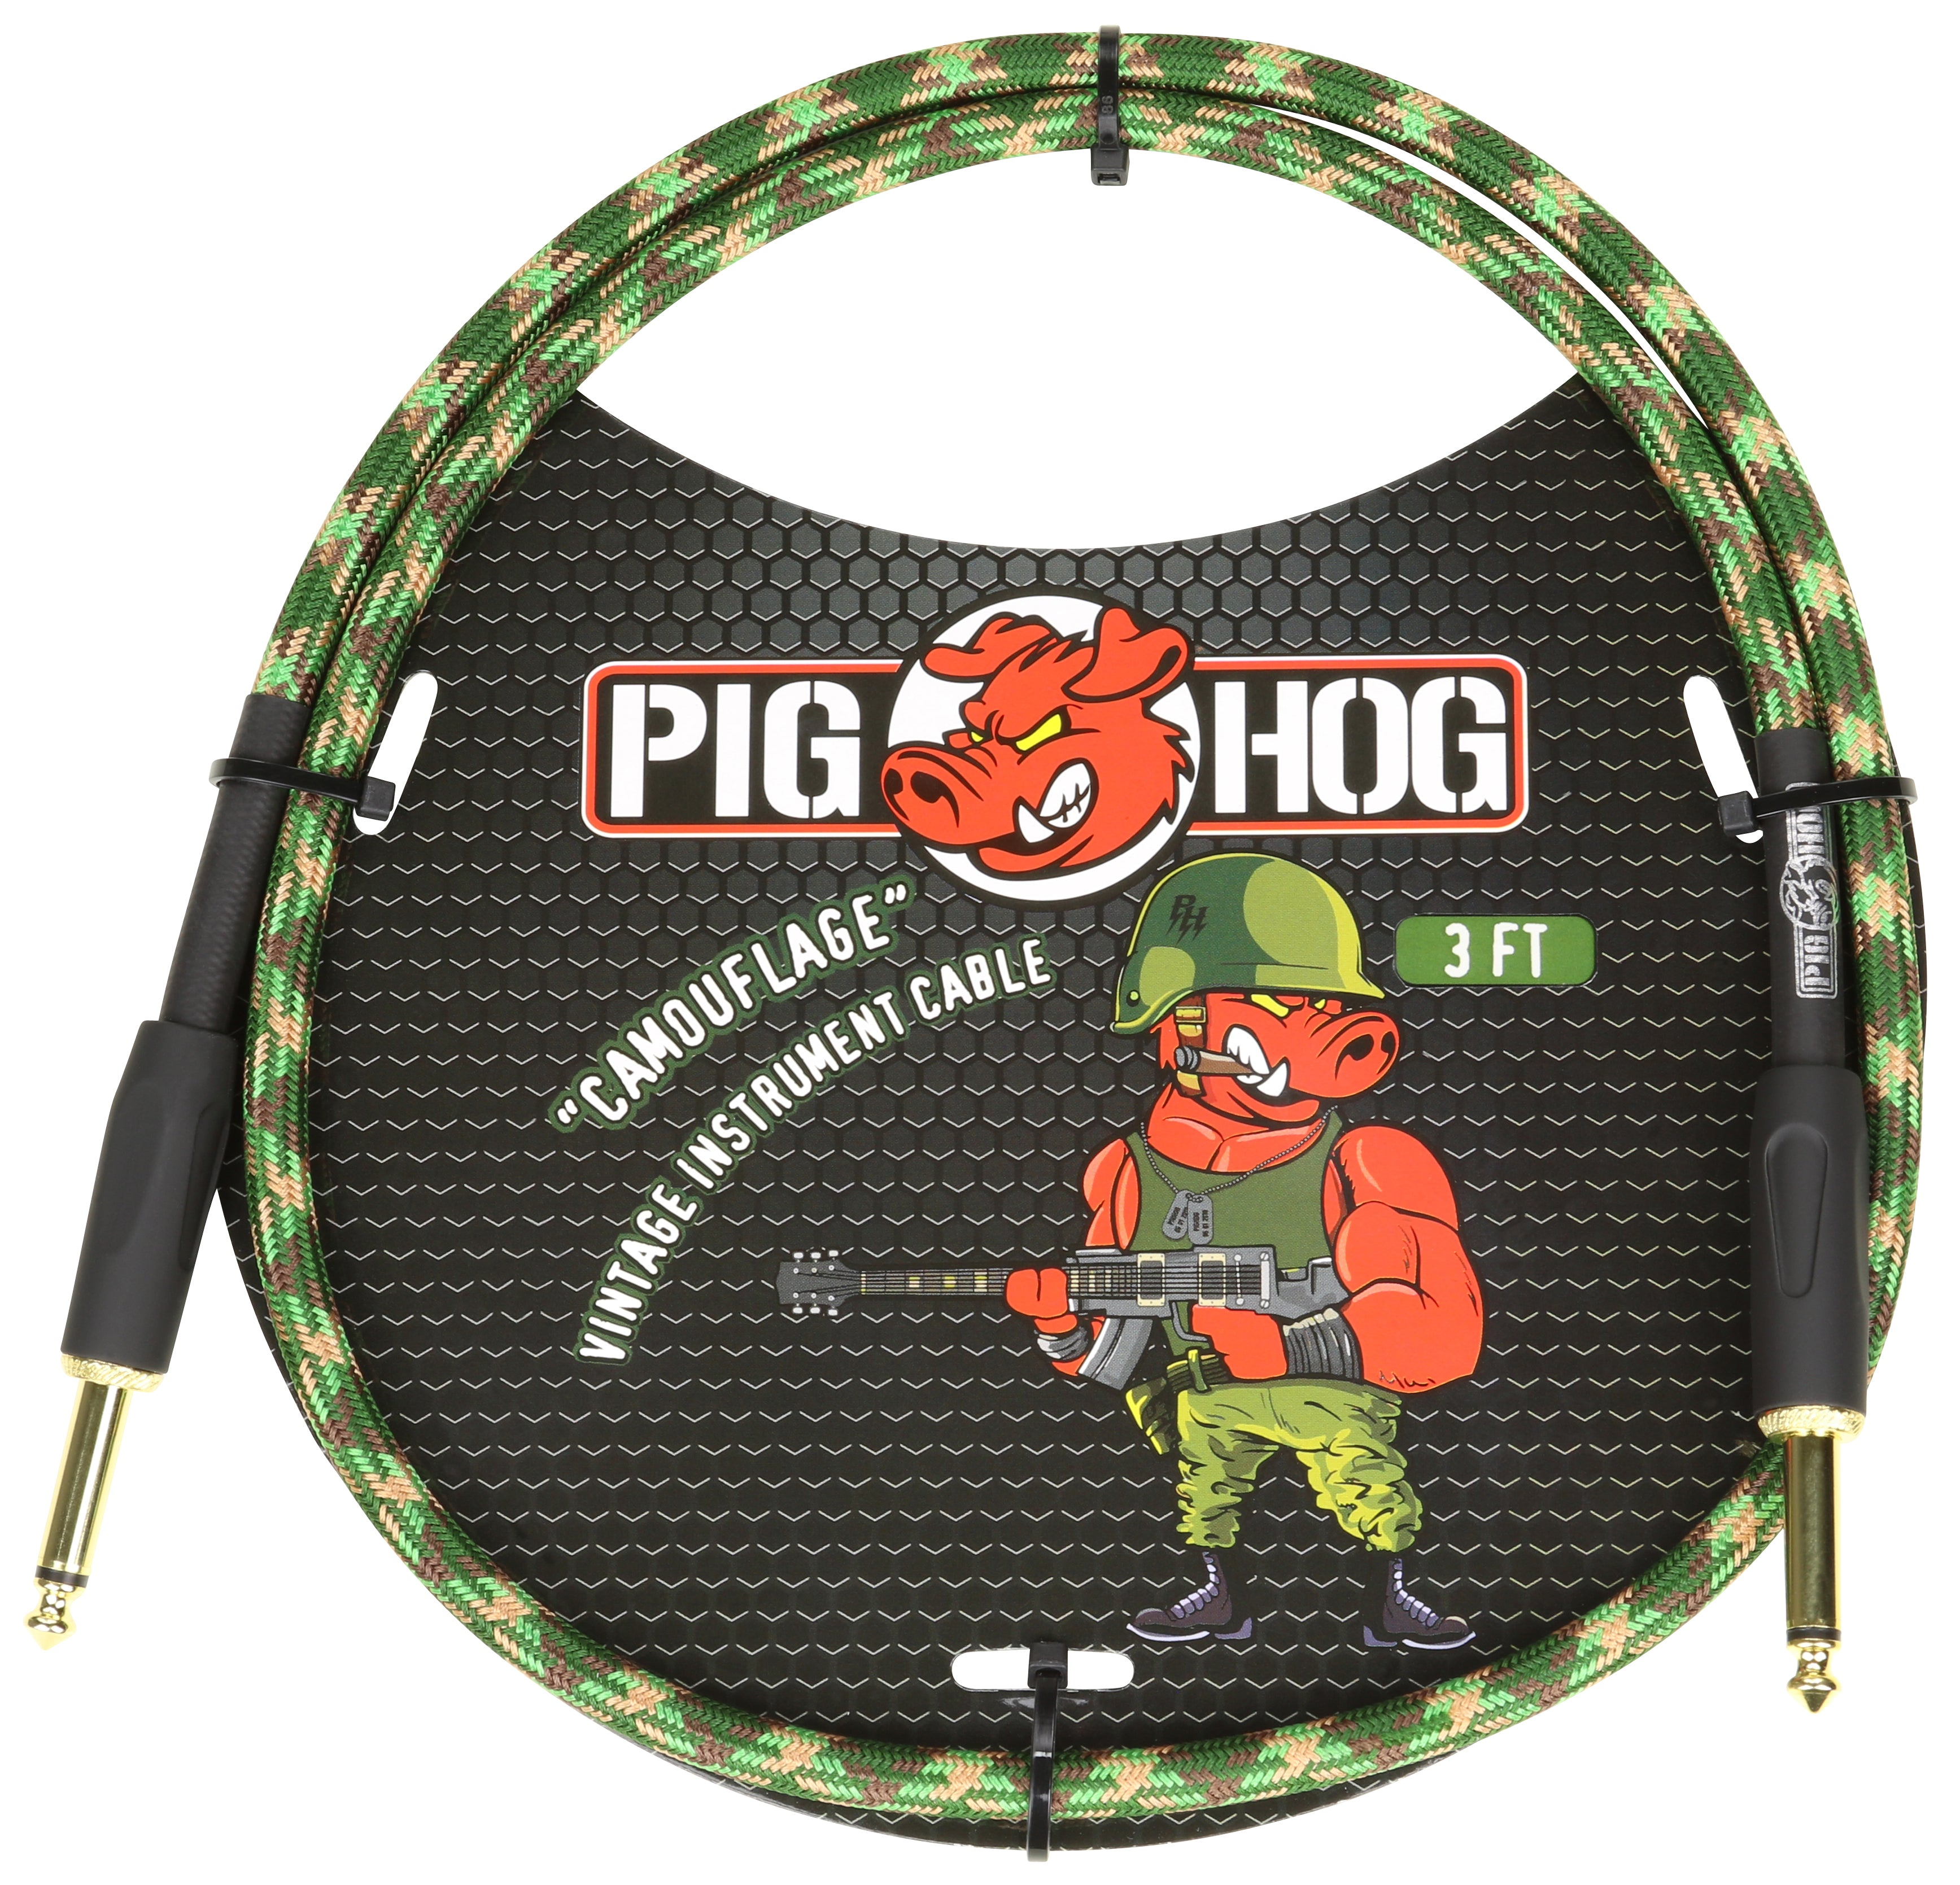 Pig Hog Camouflage 3ft Patch Cable Catalog Product Computer Cables